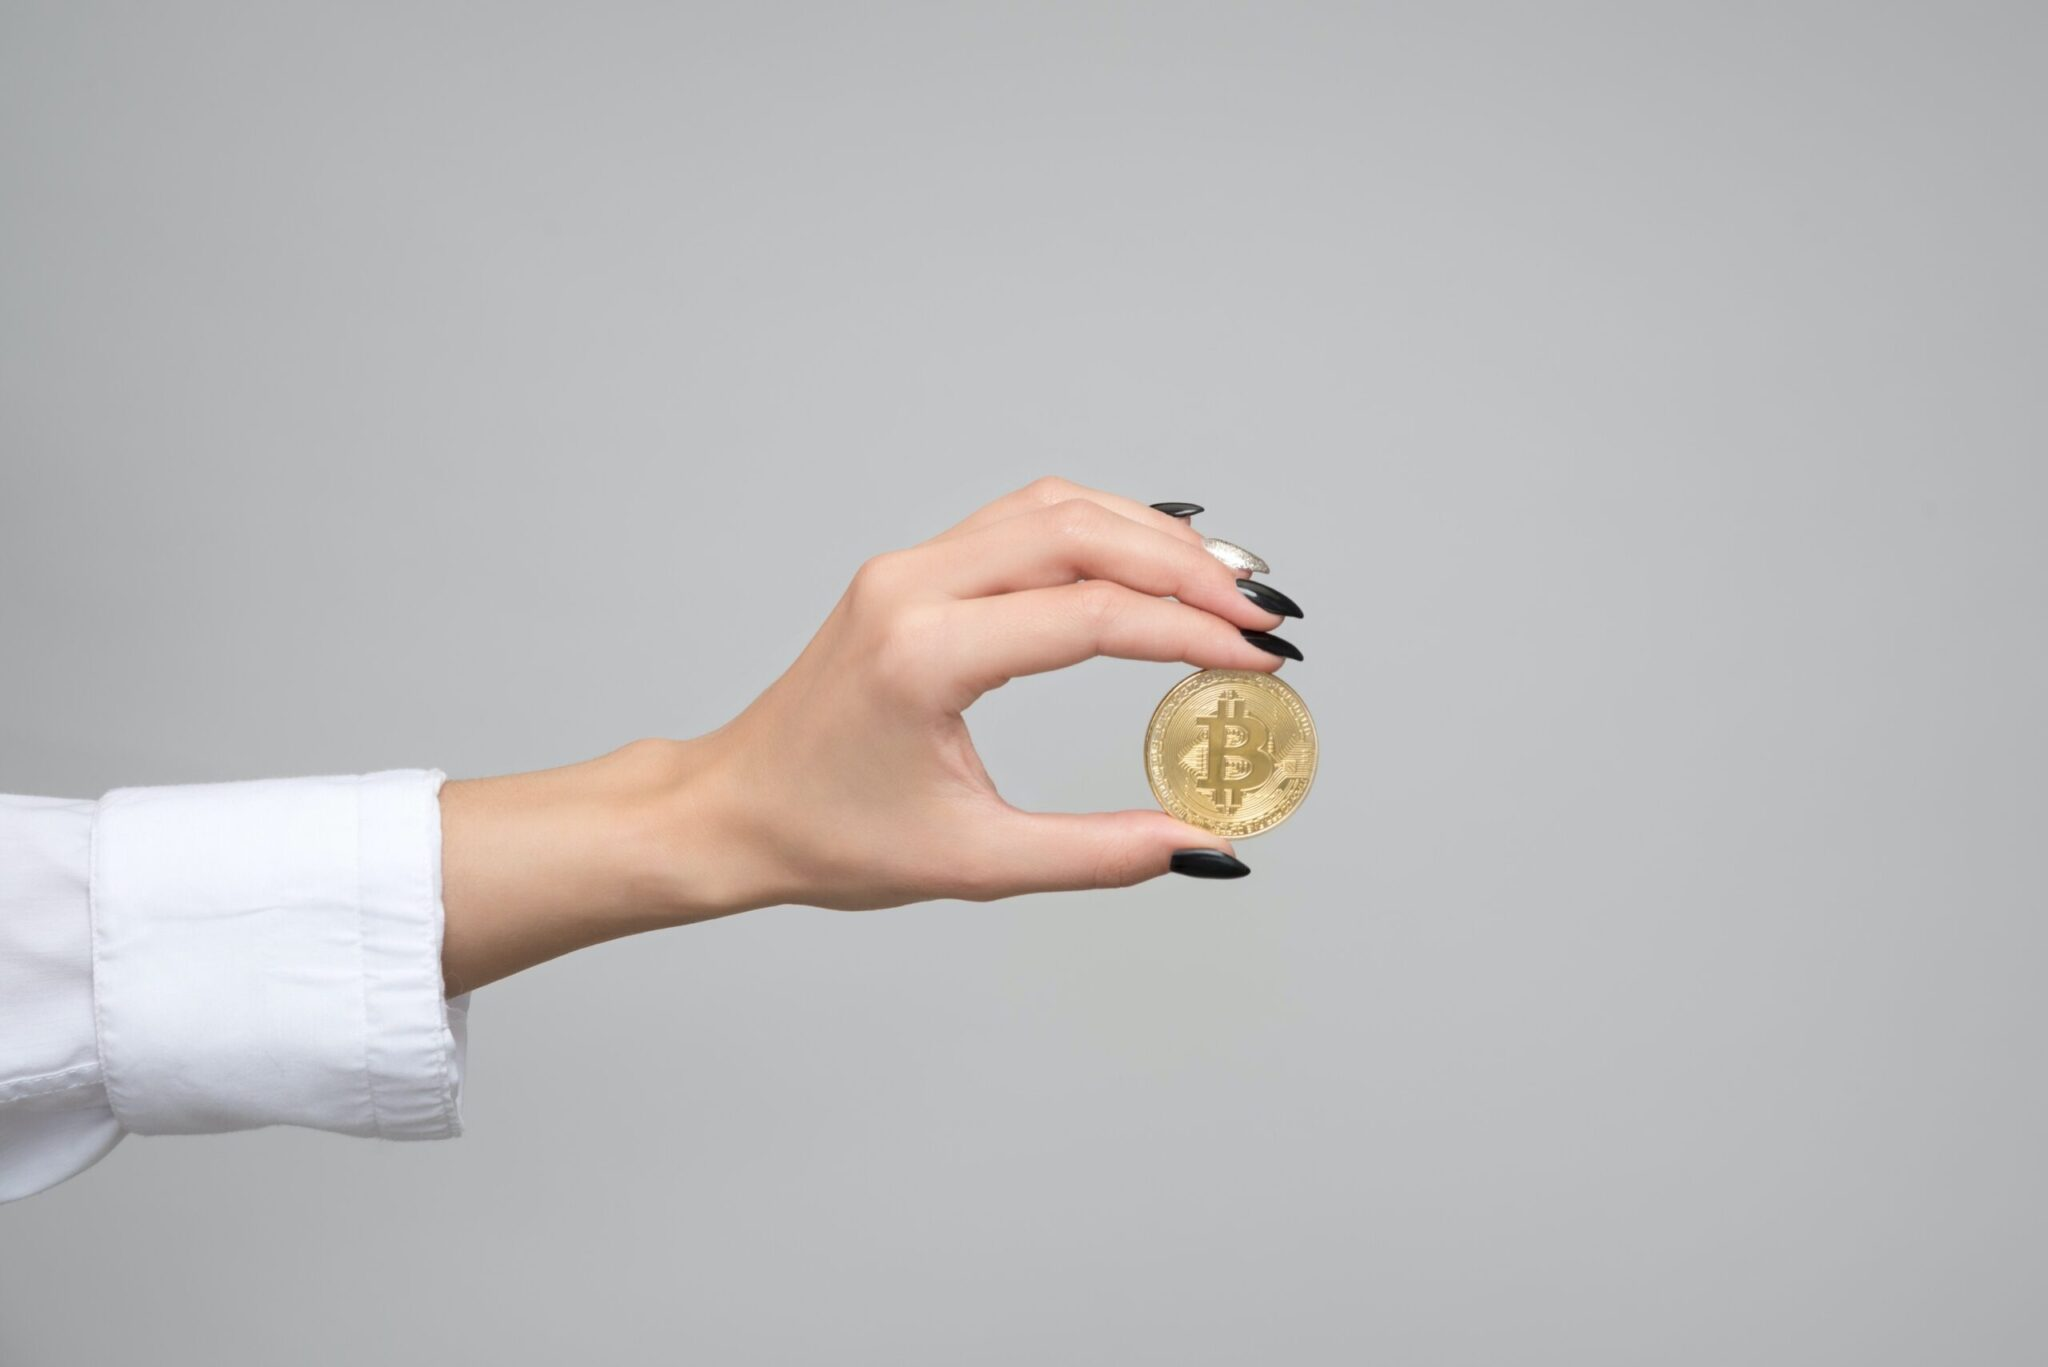 Worth Of Cryptocurrencies While Investing In Blockchain